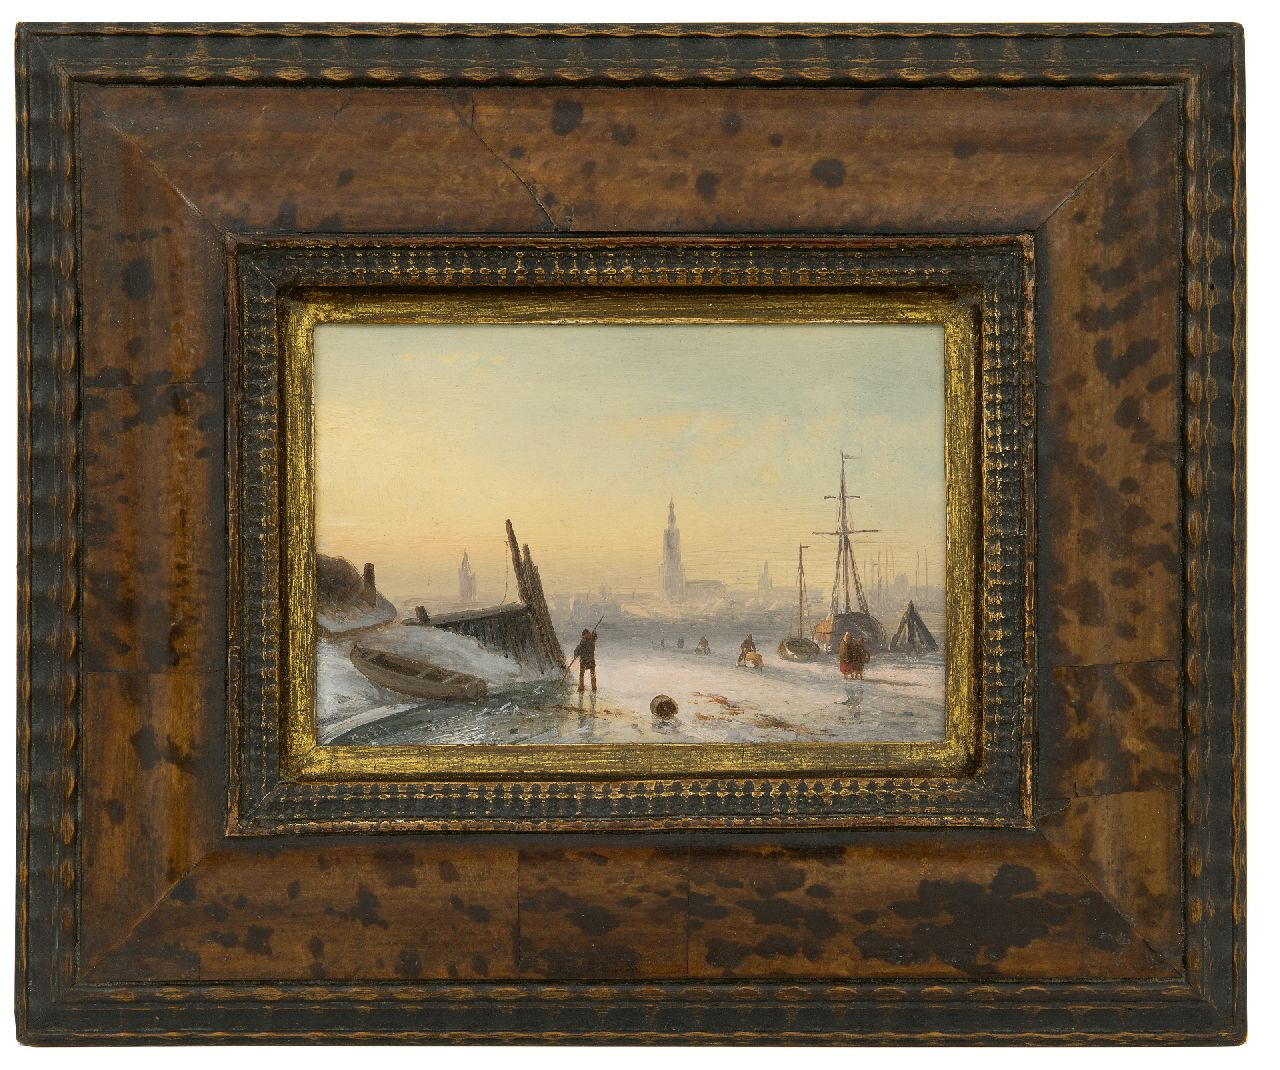 Leickert C.H.J.  | 'Charles' Henri Joseph Leickert | Paintings offered for sale | Ice scene with skaters near a city, oil on panel 11.7 x 17.3 cm, signed l.l. with initials